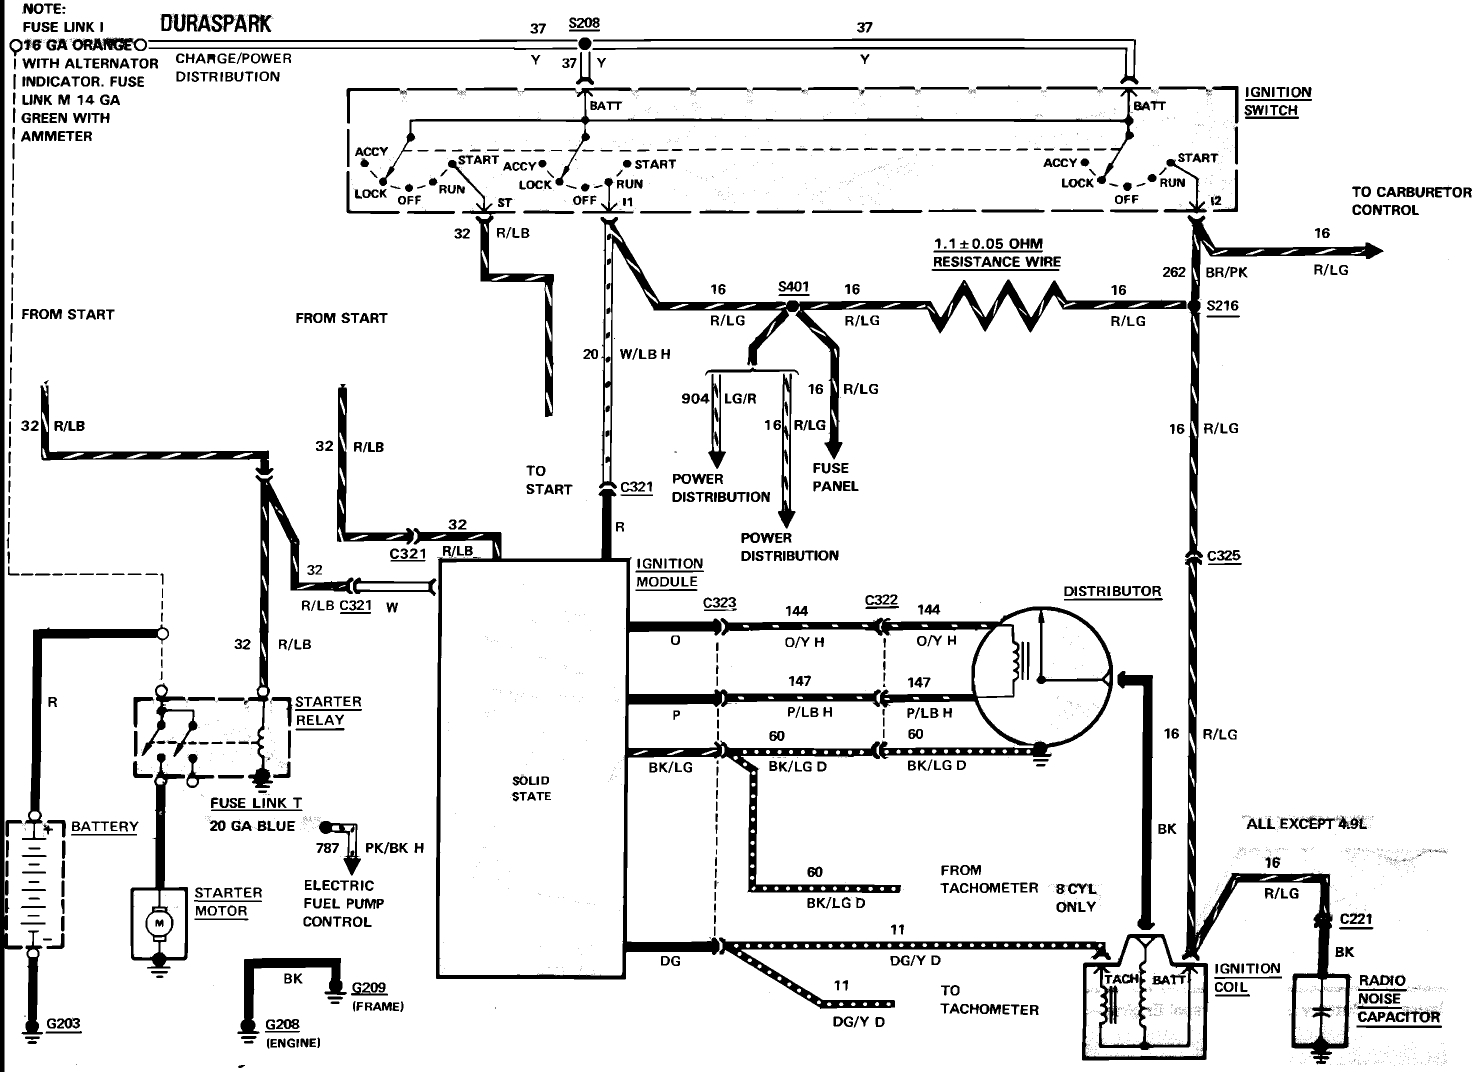 2003 ford expedition ignition wiring diagram 1989 ford f150 ignition wiring diagram | free wiring diagram 2002 ford expedition ignition wiring diagram